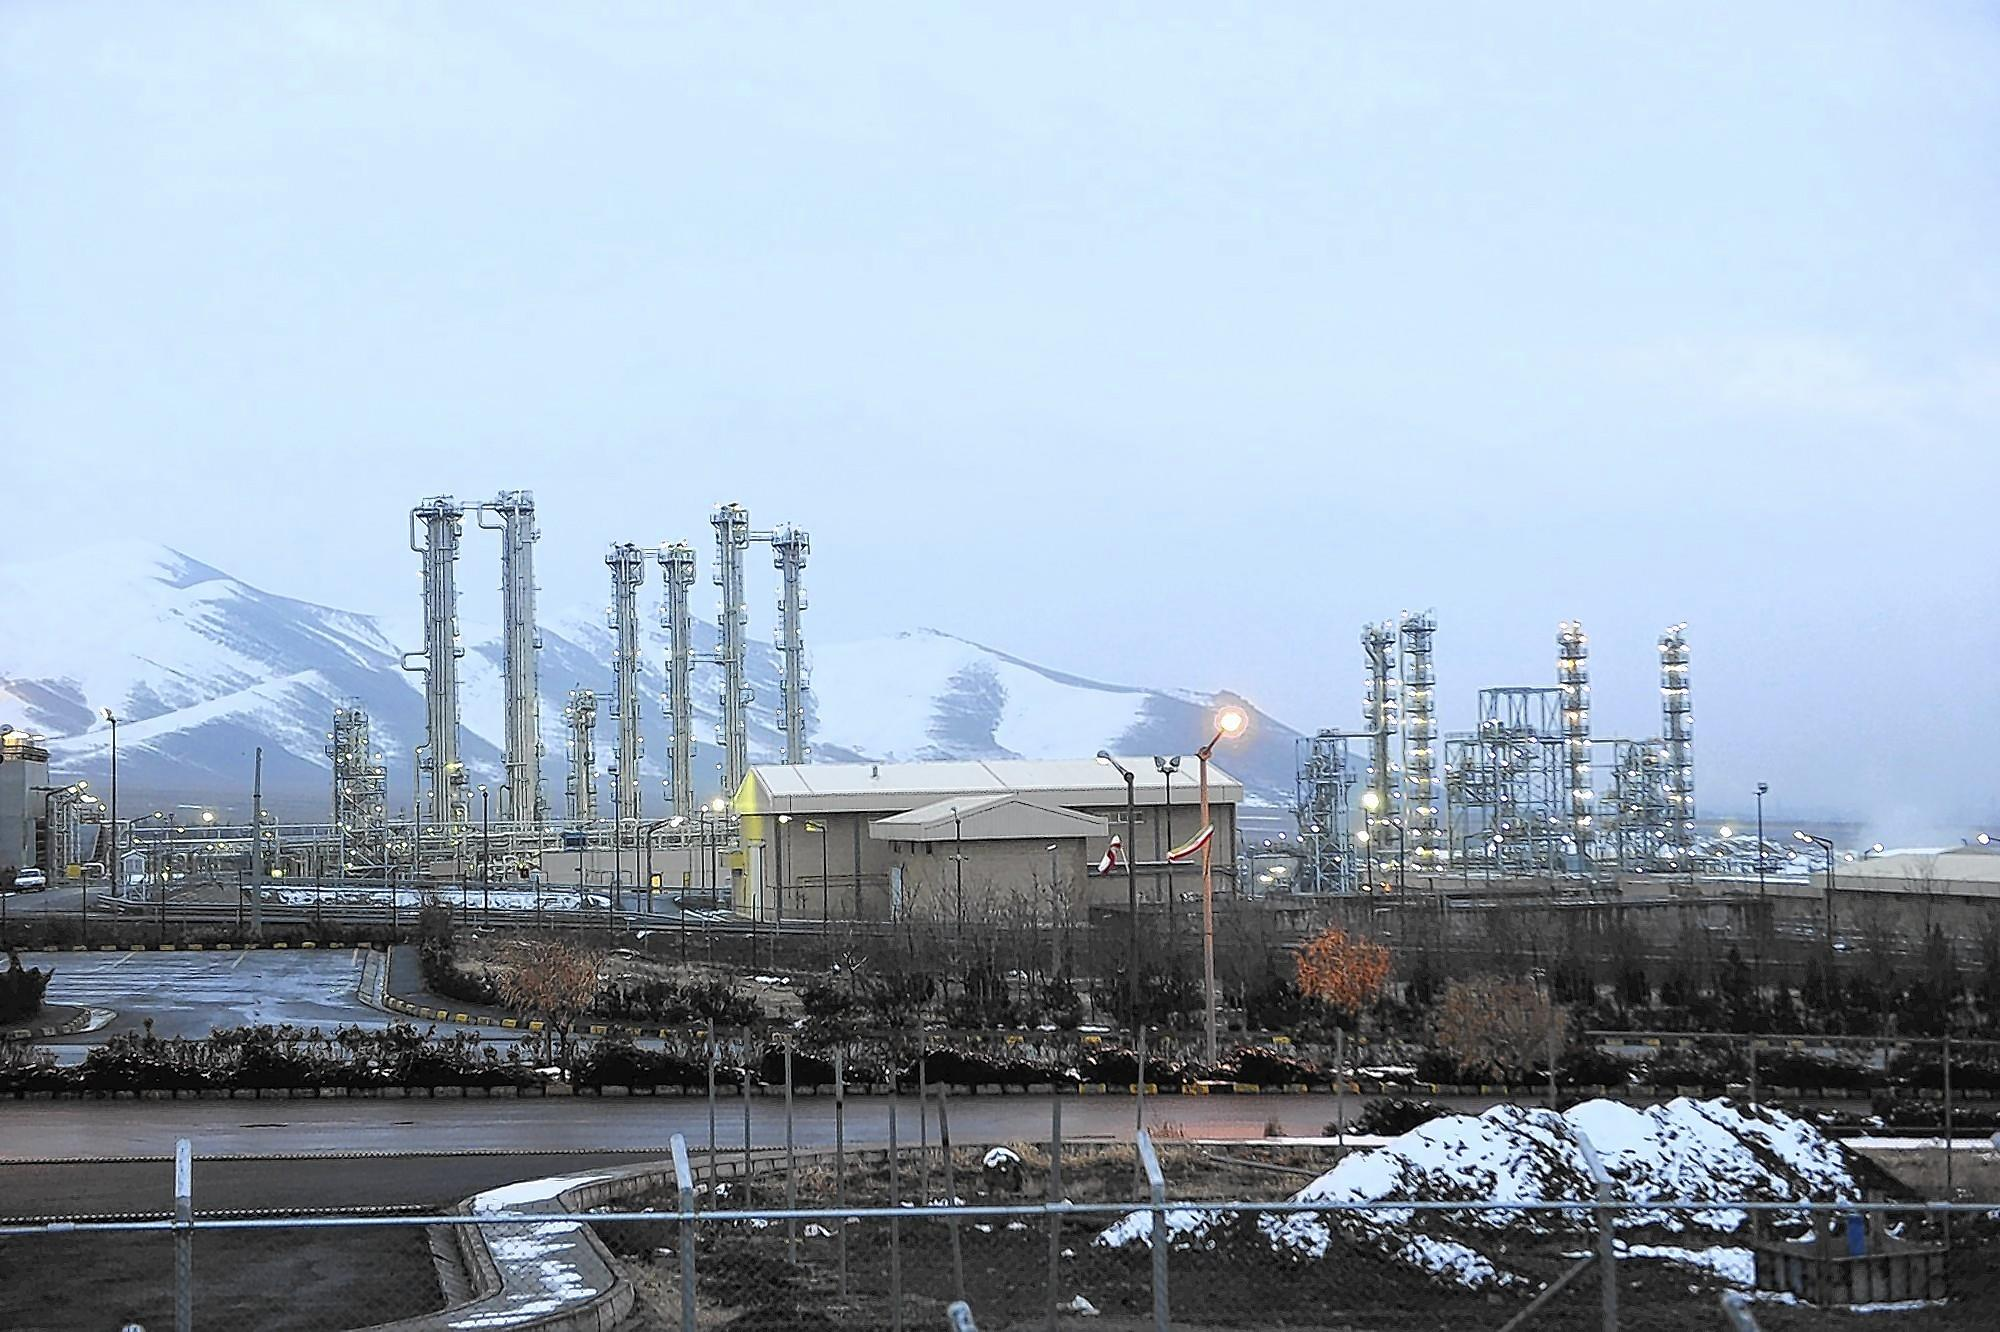 Iran says its Arak nuclear plant, seen in January of 2011, is being redesigned to produce less plutonium, a key ingredient in nuclear weapons.